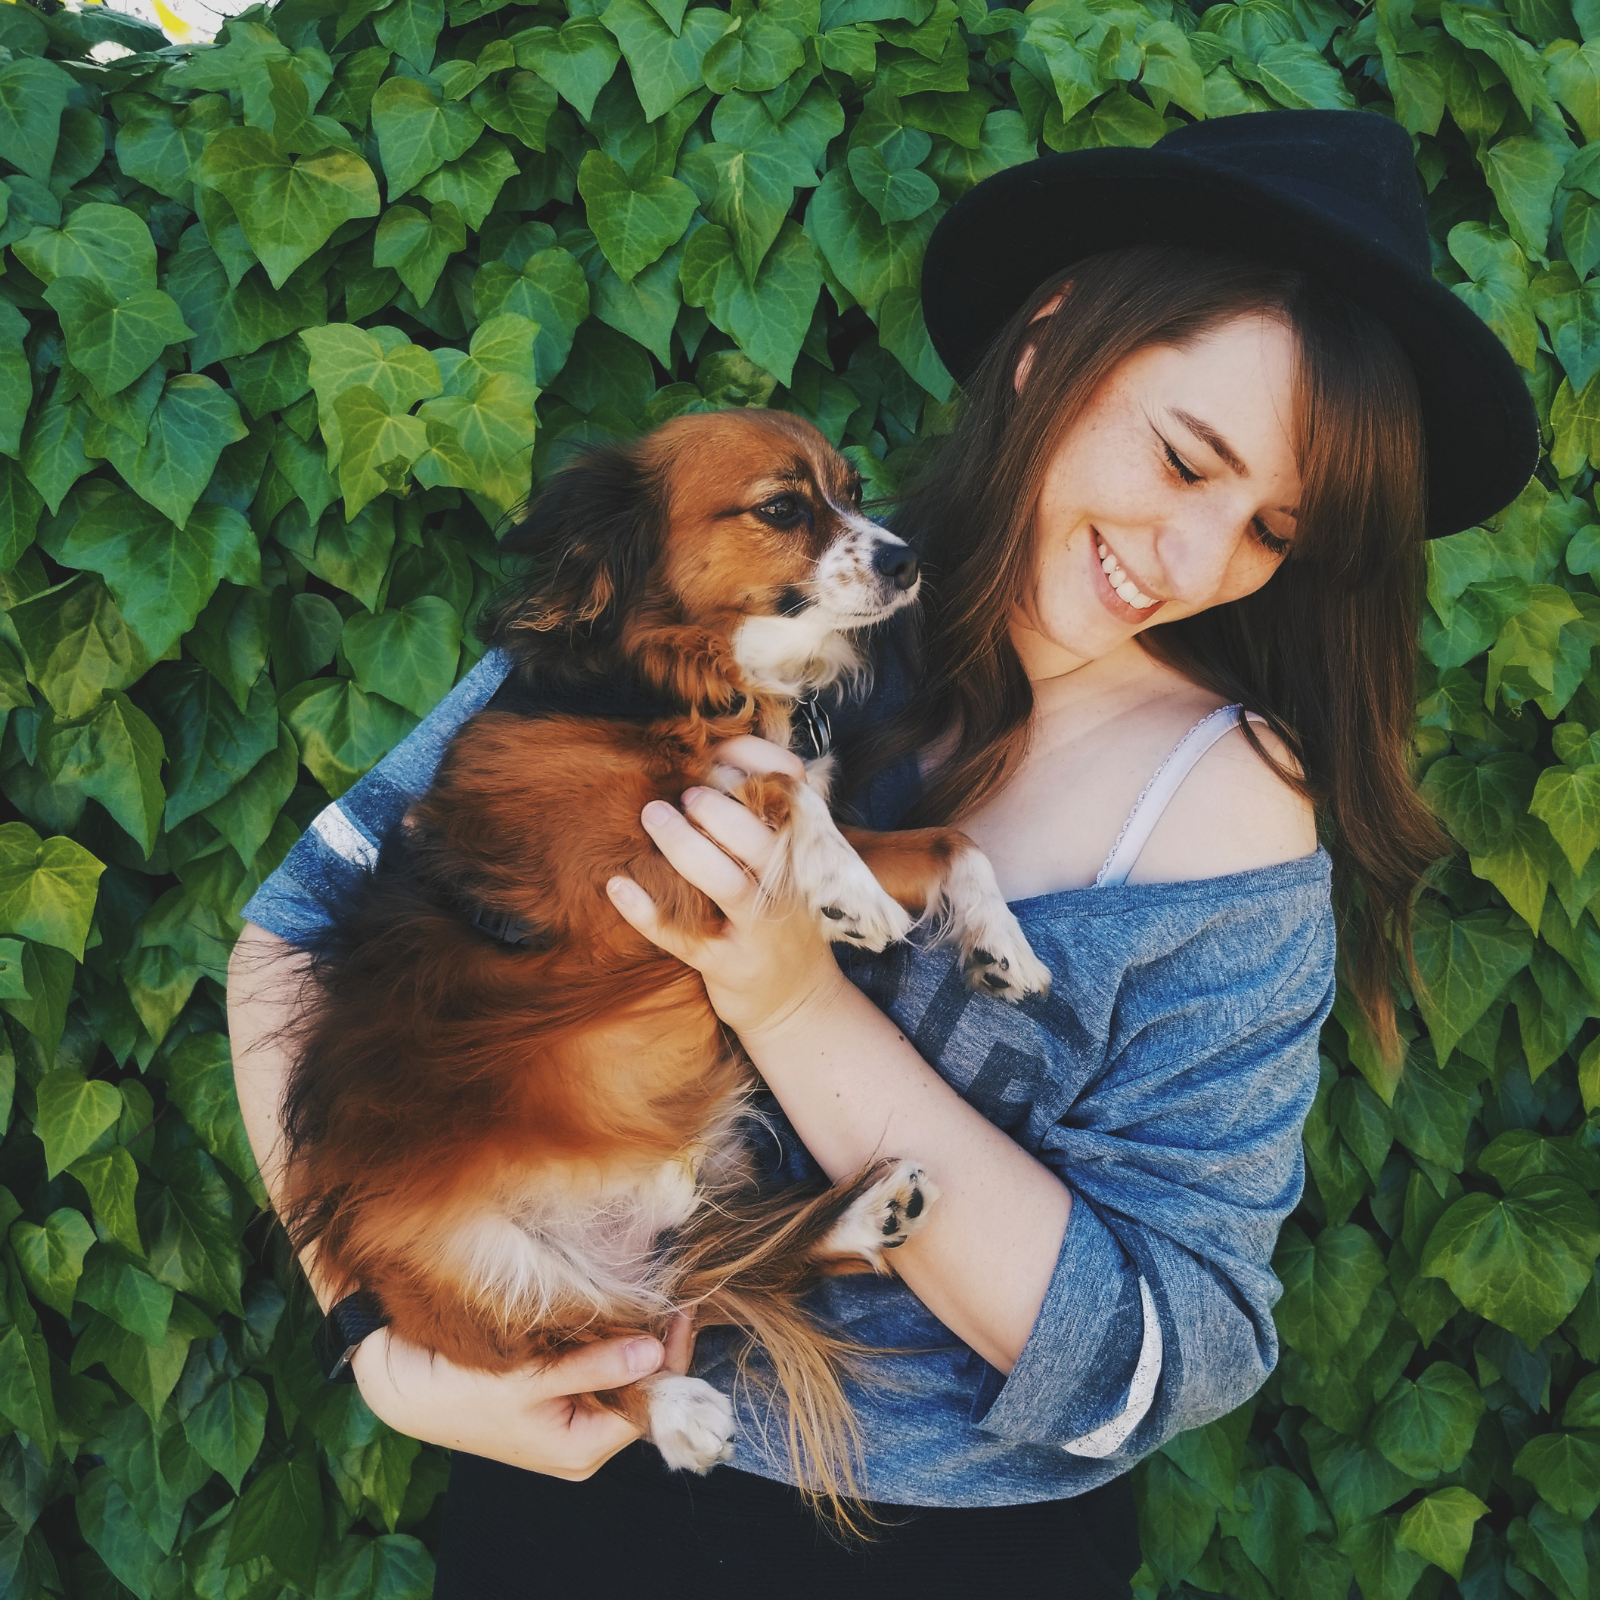 A girl smiling, holding her dog